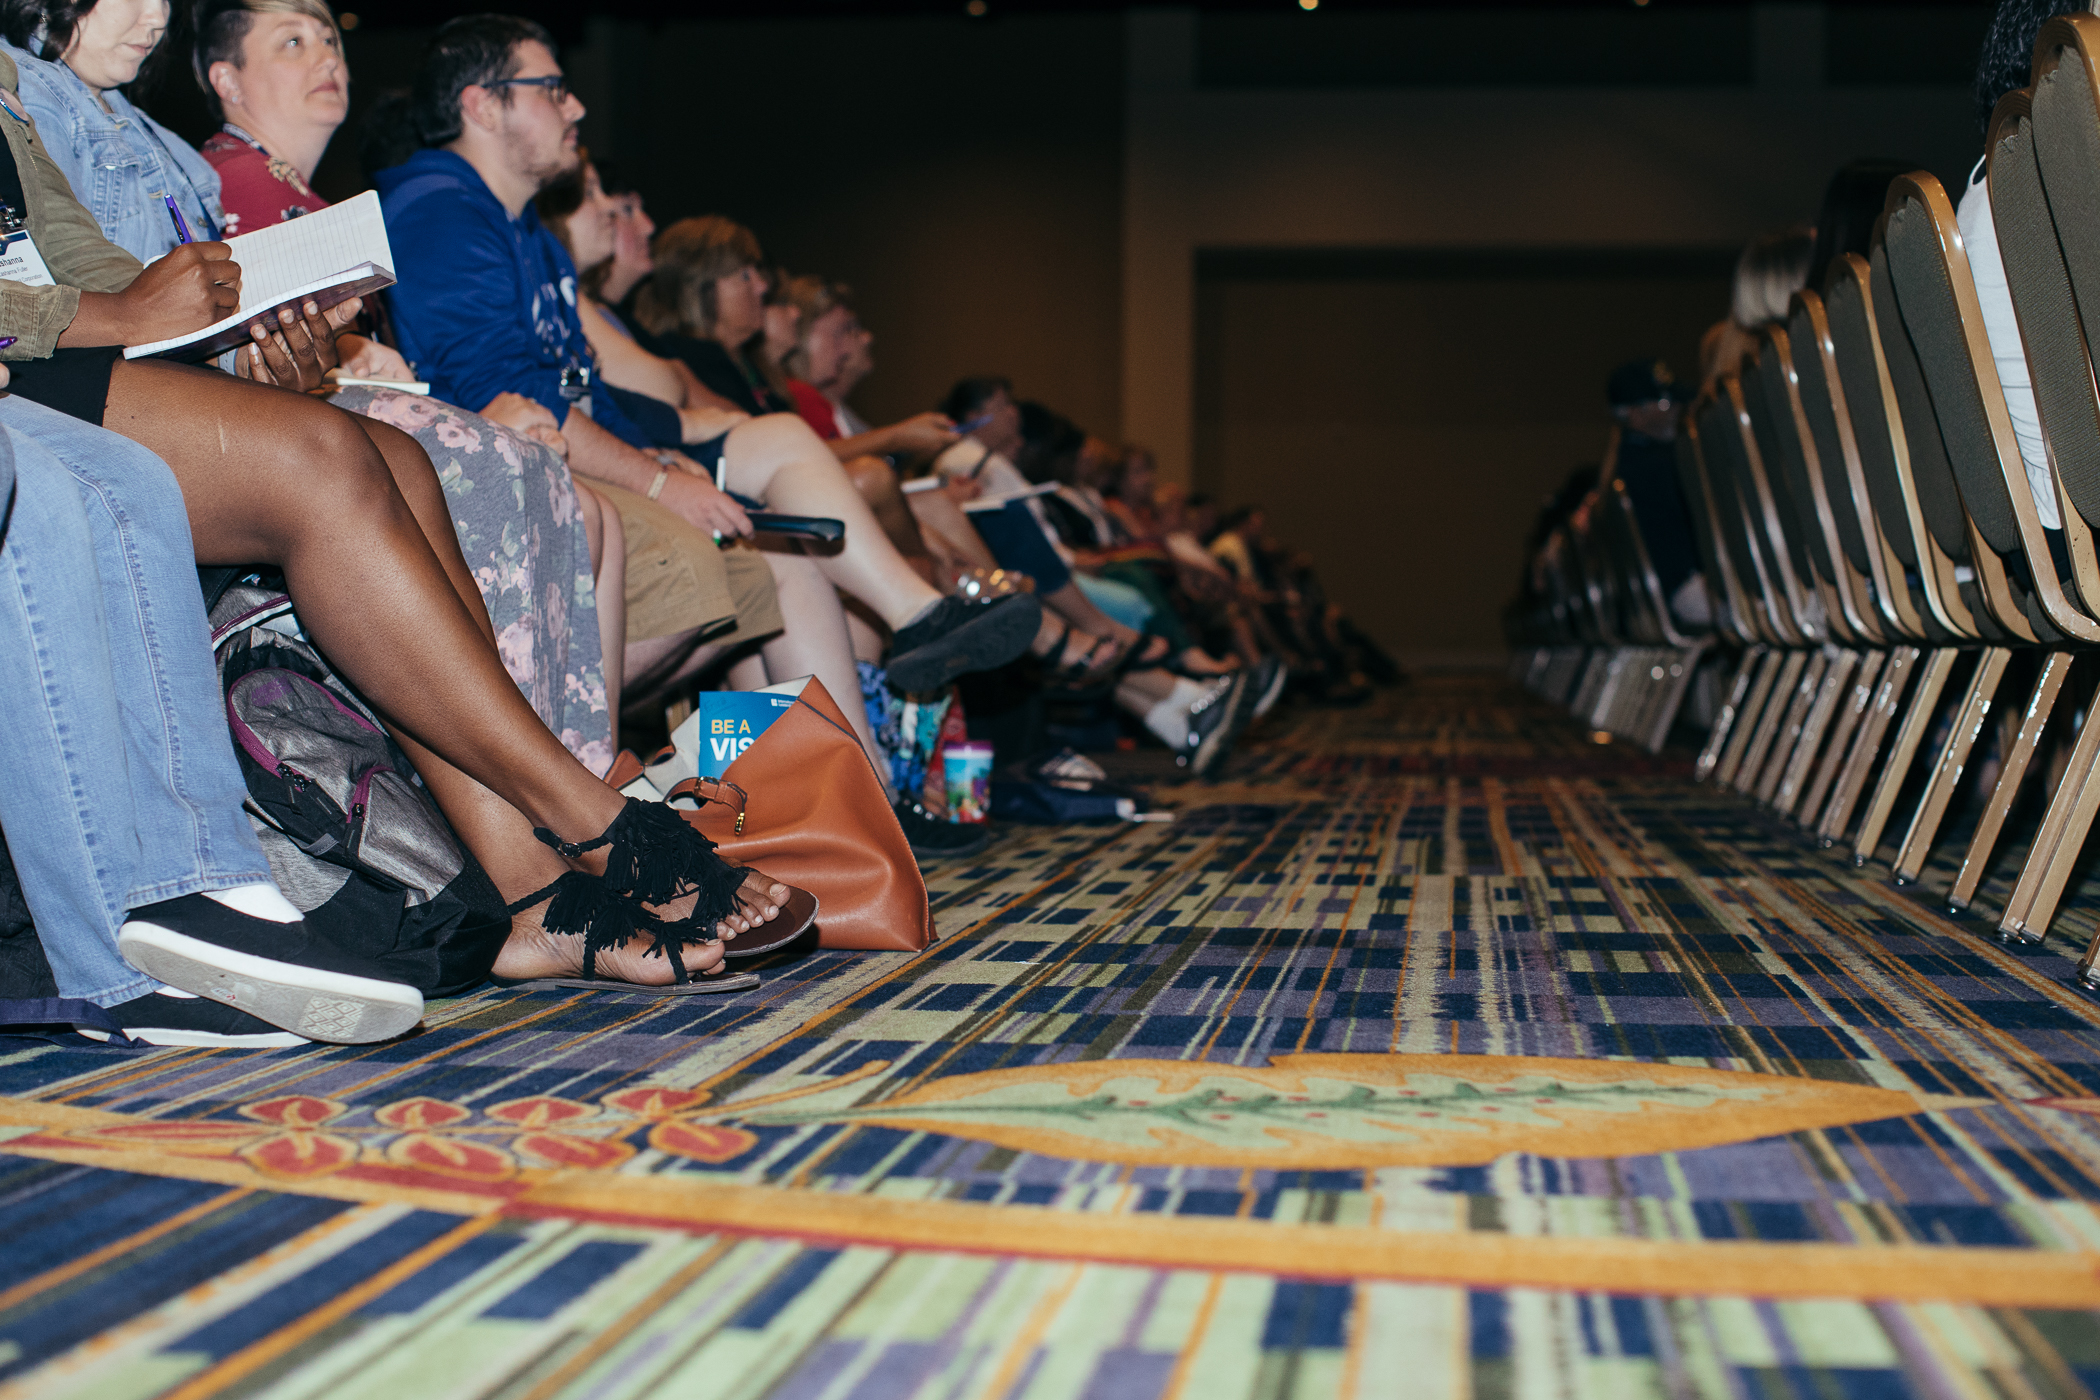 live event commercial photography brand storytelling for education florida conference photographer ©2018abigailbobophotography-31.jpg